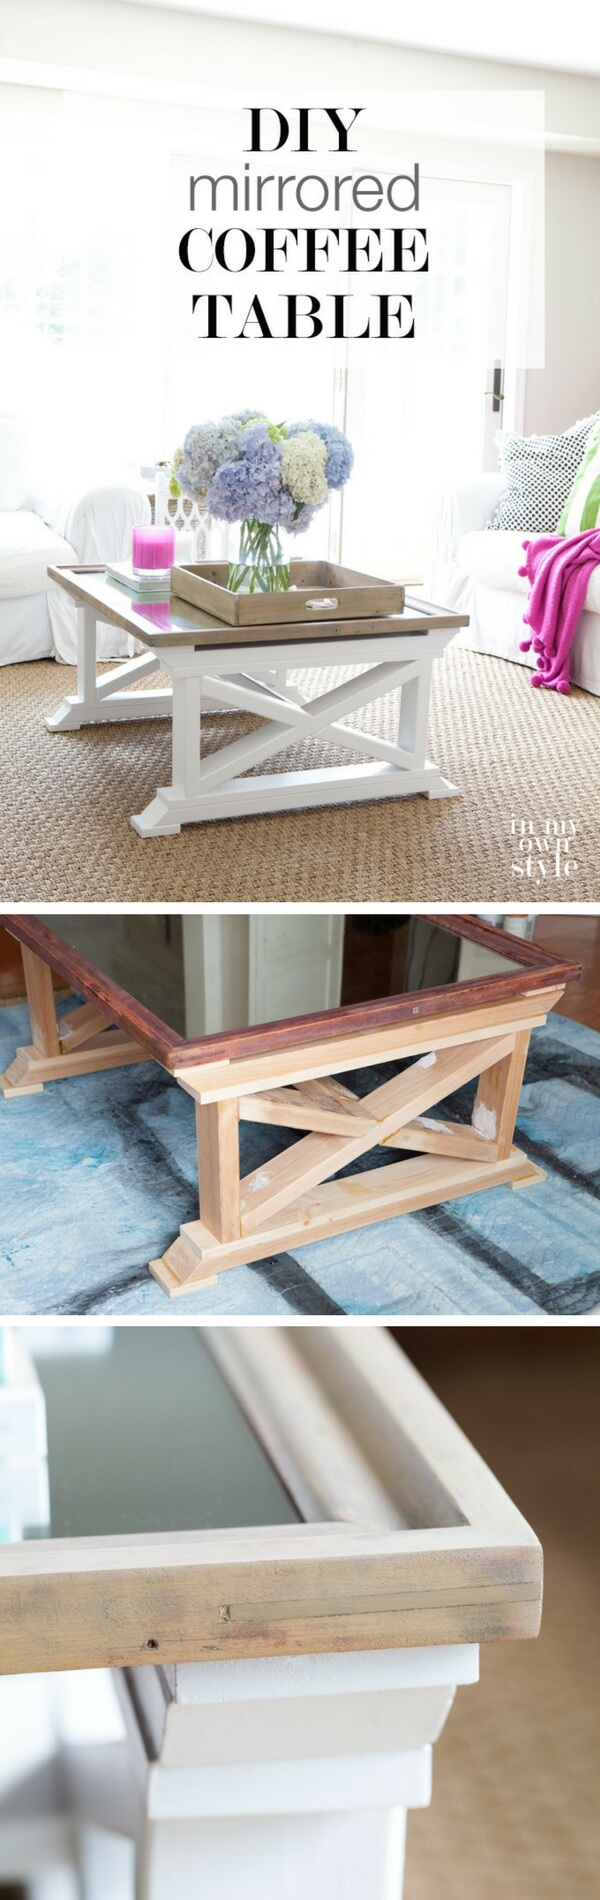 diy living room table decor sets under 500 45 best decorating ideas and designs for 2019 farmhouse meets mod mirrored